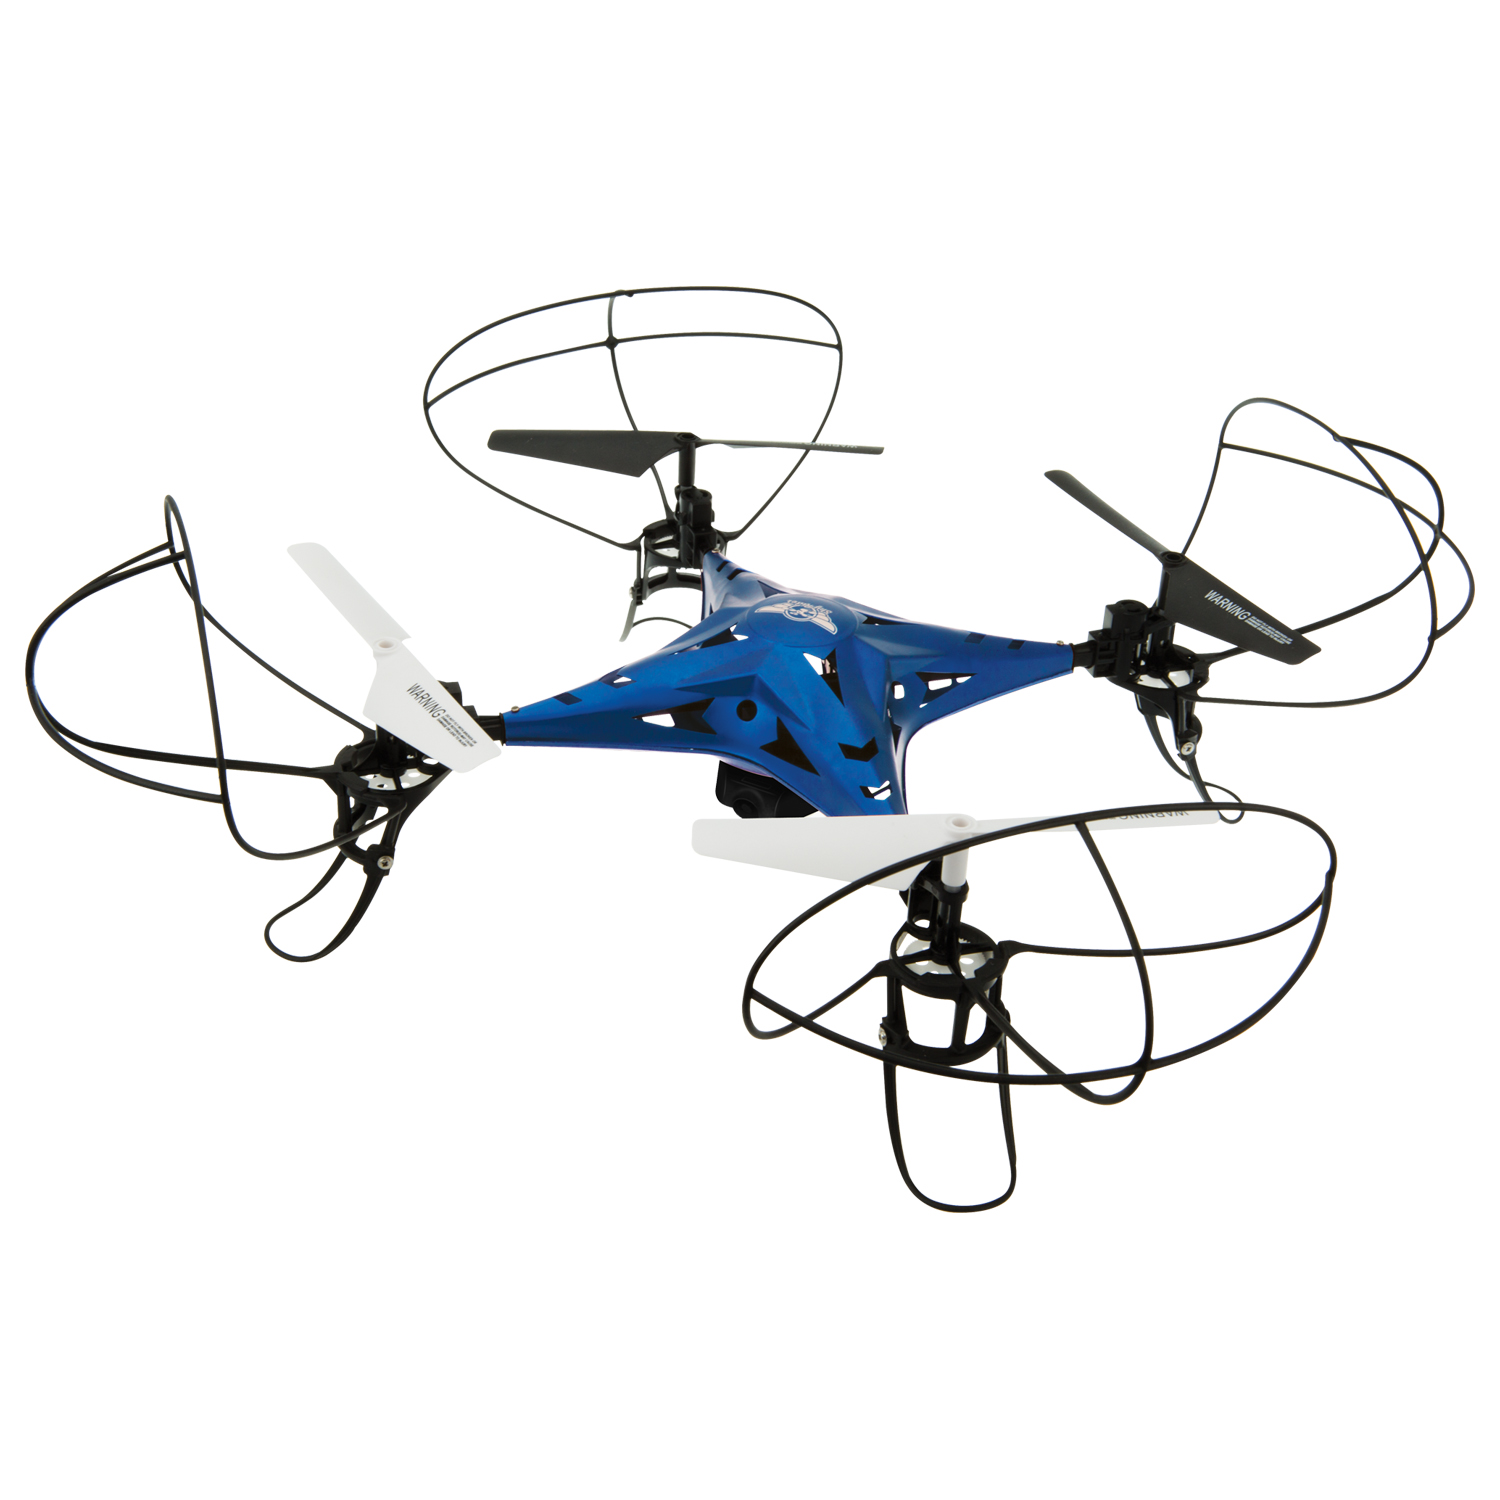 Sky Rider Metal Alloy Drone Quadcopter with Wi-Fi Camera & Extra Battery, DRW637BUVP by Sky Rider